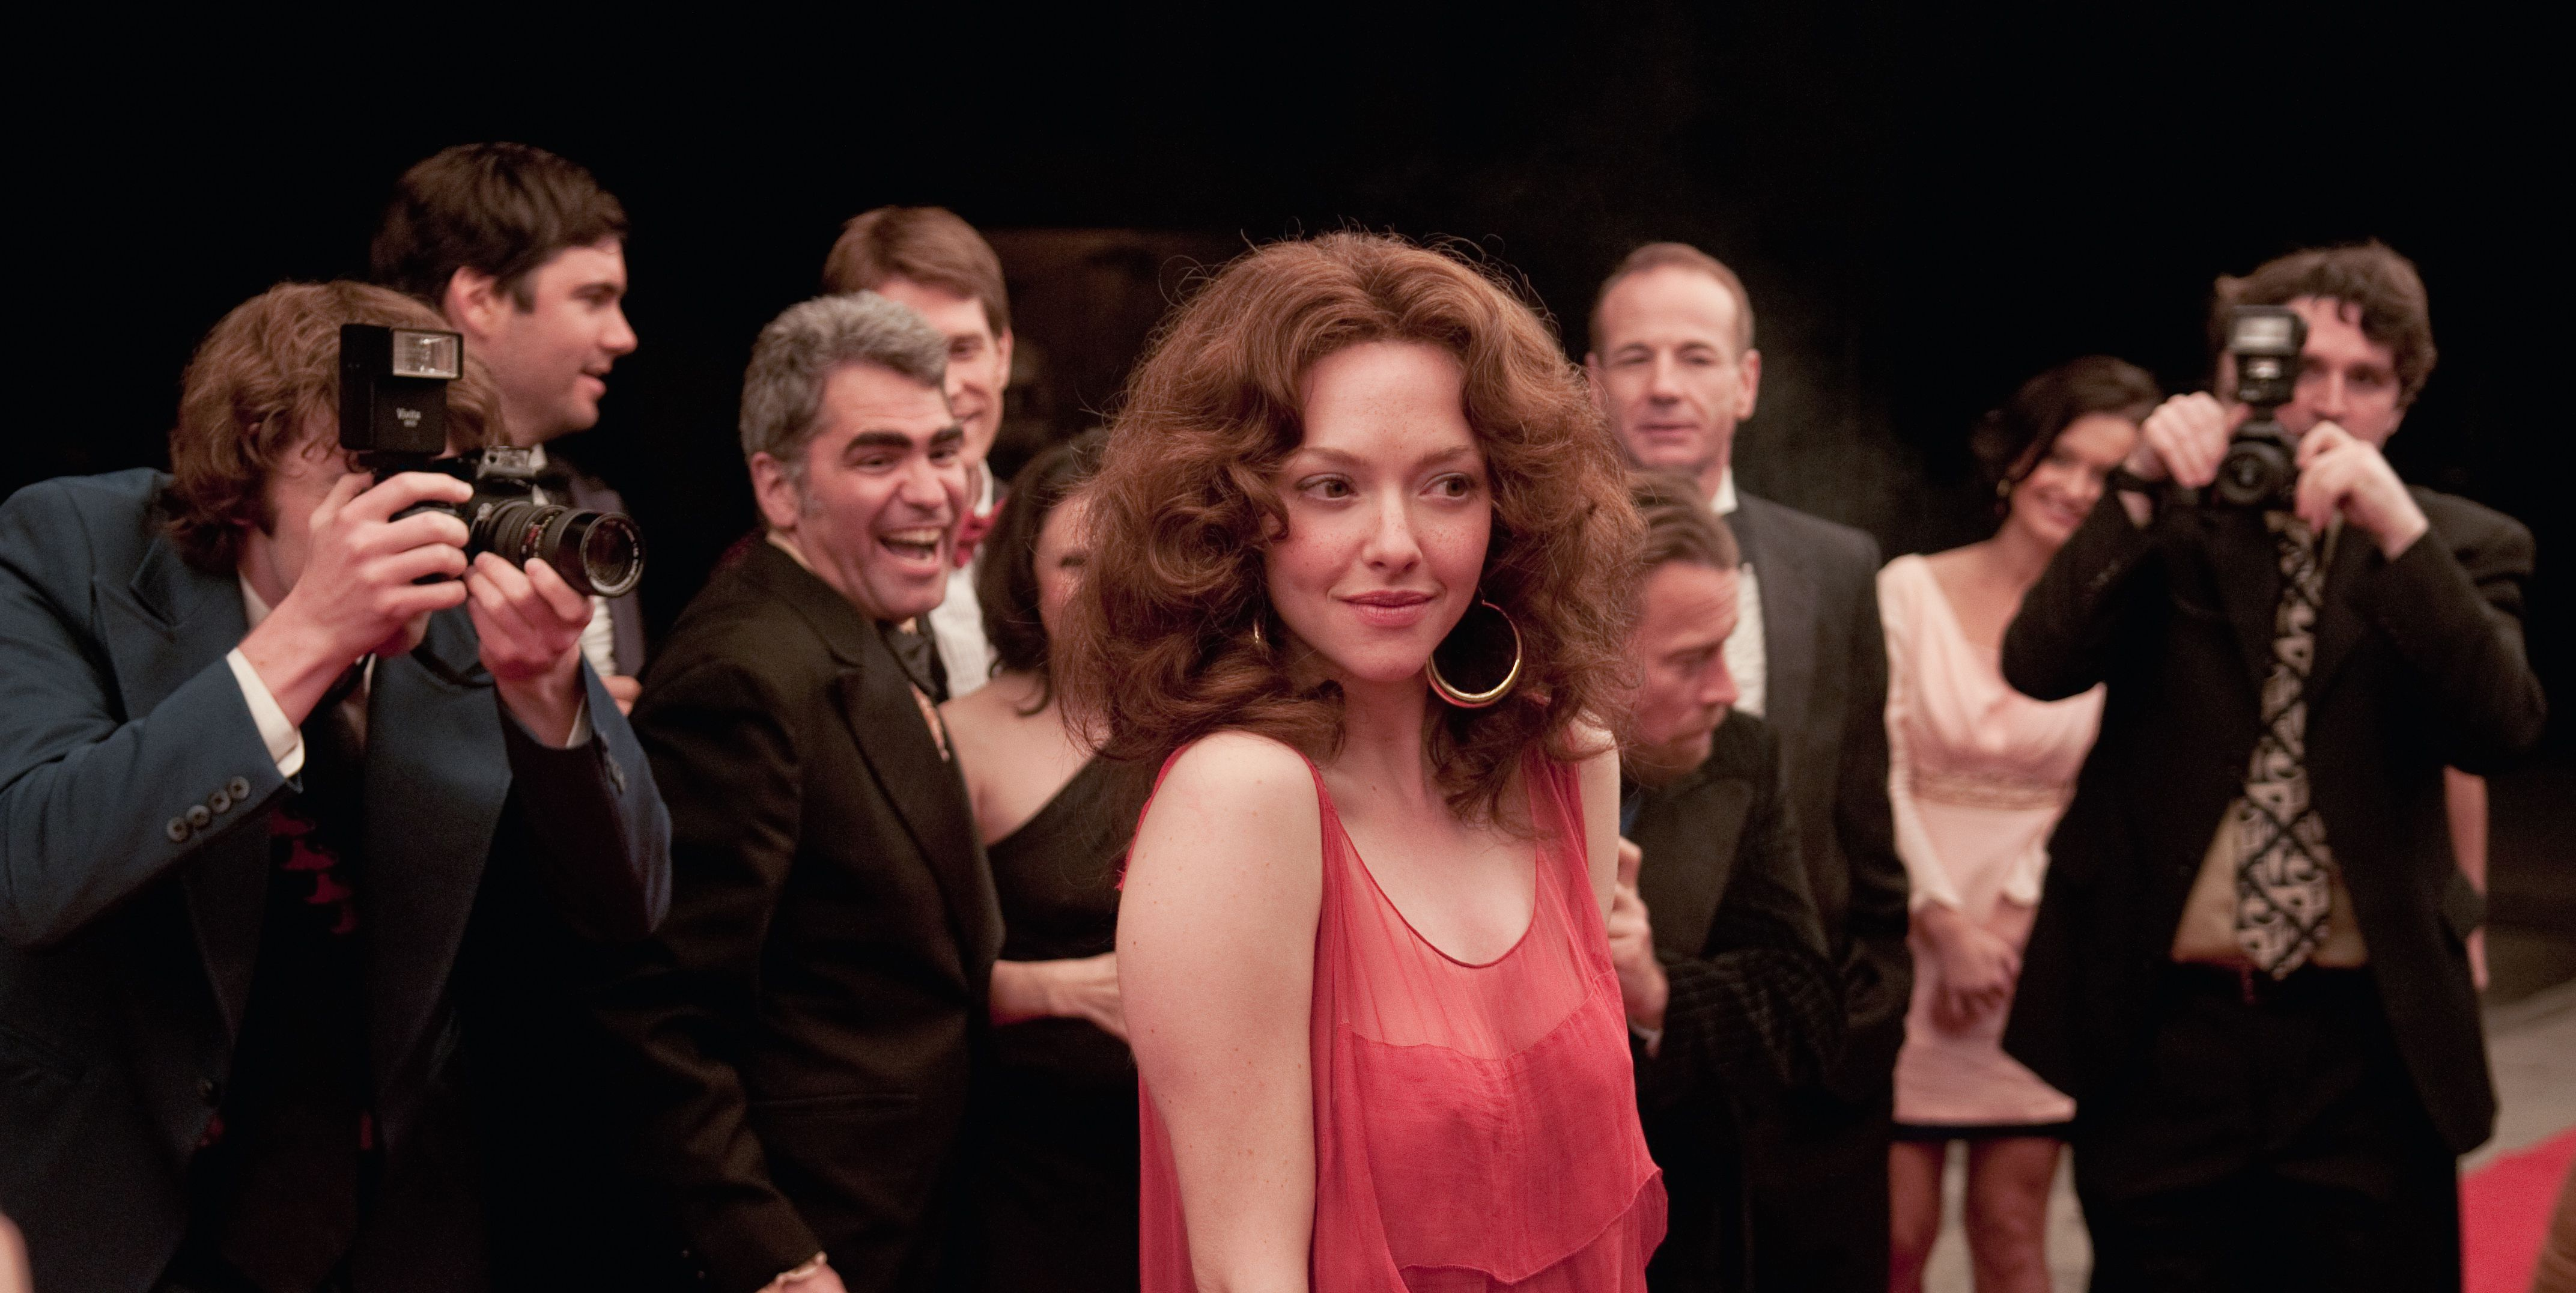 An image from Lovelace